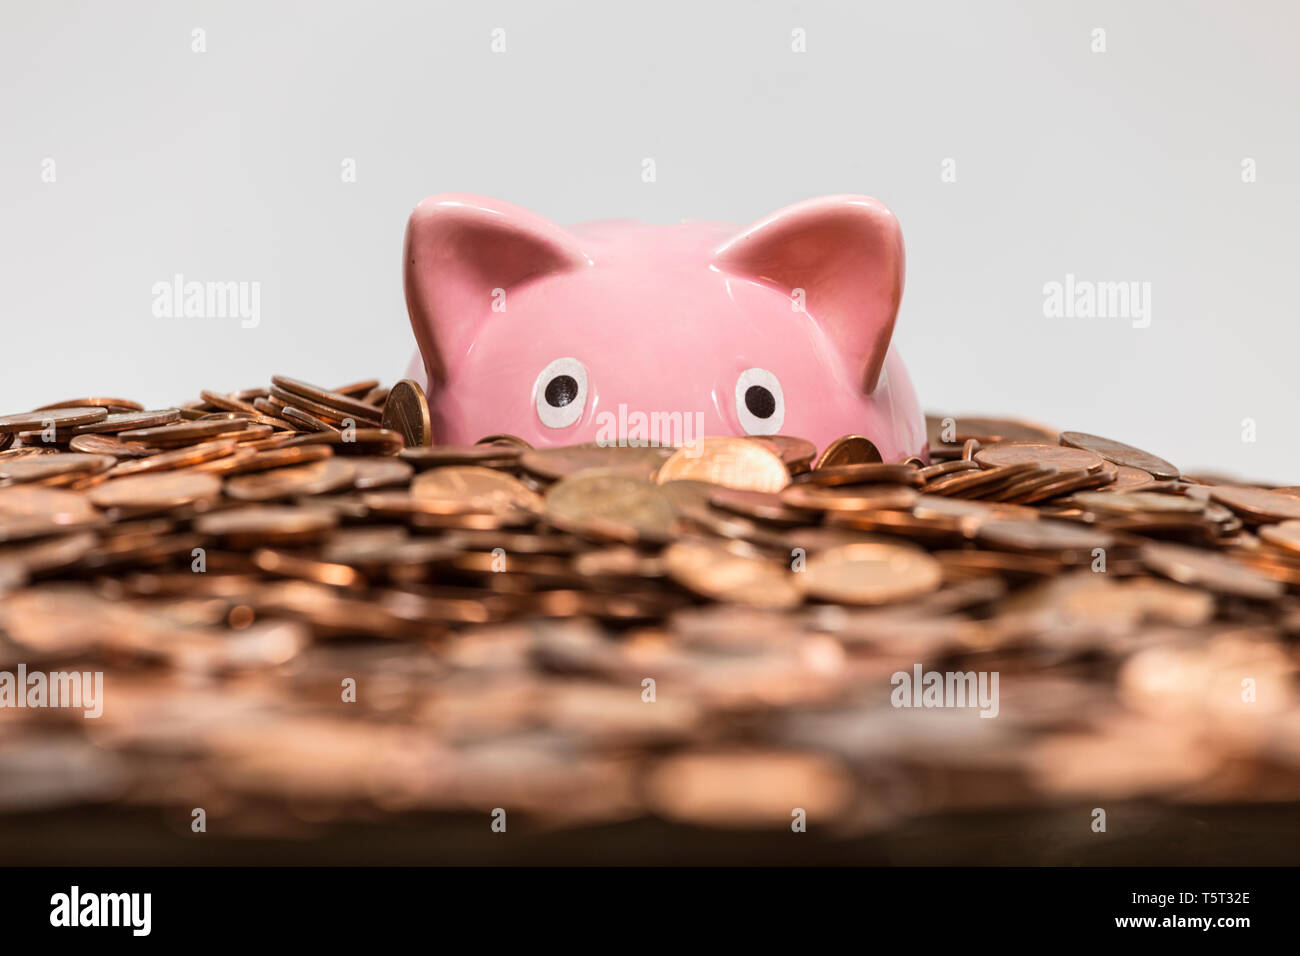 Pink piggy bank drowning in ocean of copper pennies. - Stock Image